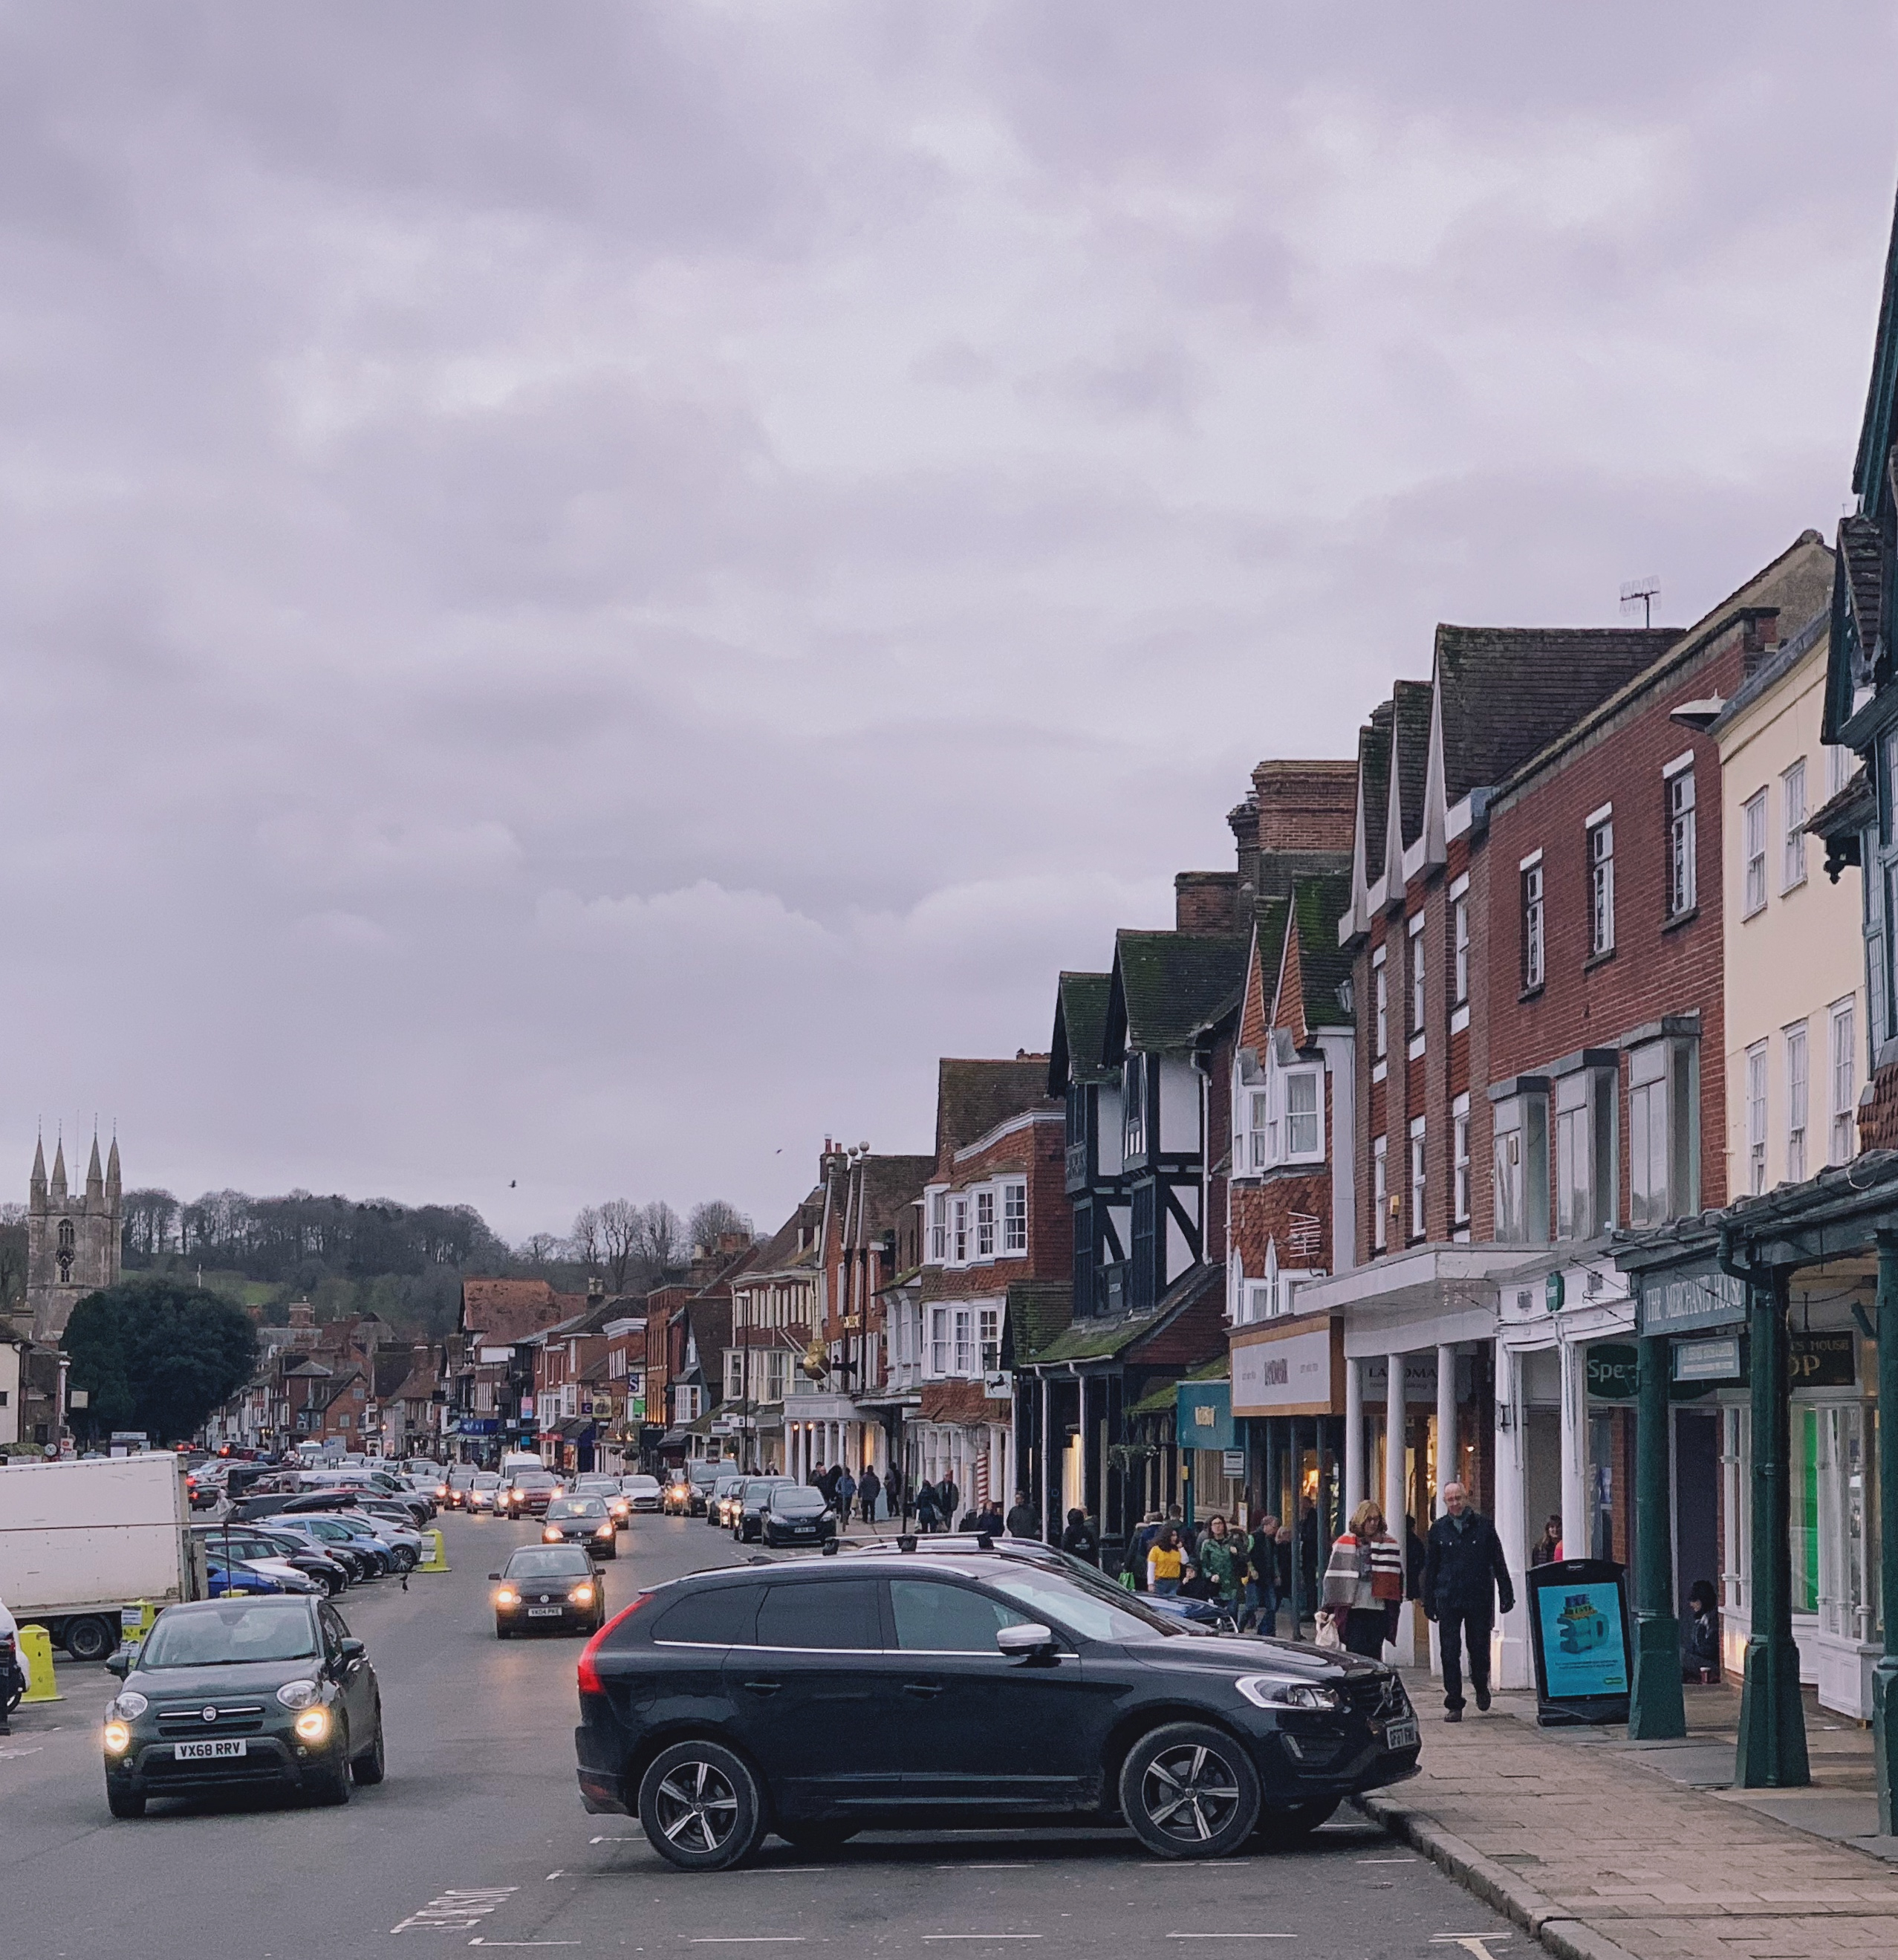 A Guide to the Historic Market Town of Marlborough